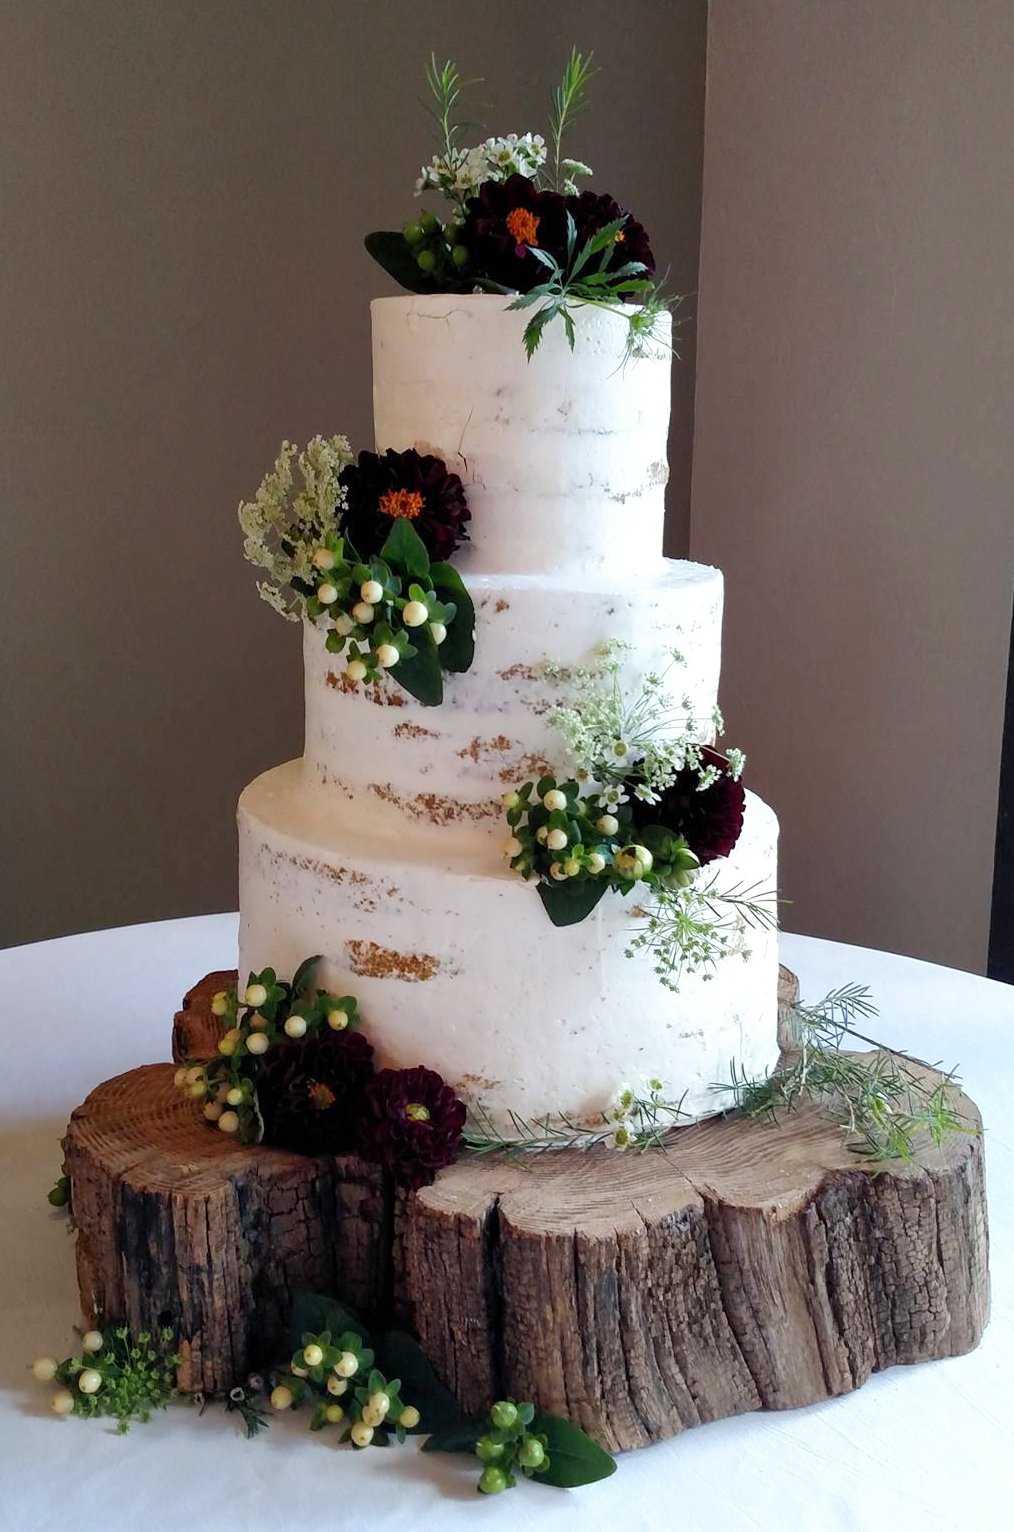 Beautiful Barely Iced Wedding Cake With Fresh Flowers.